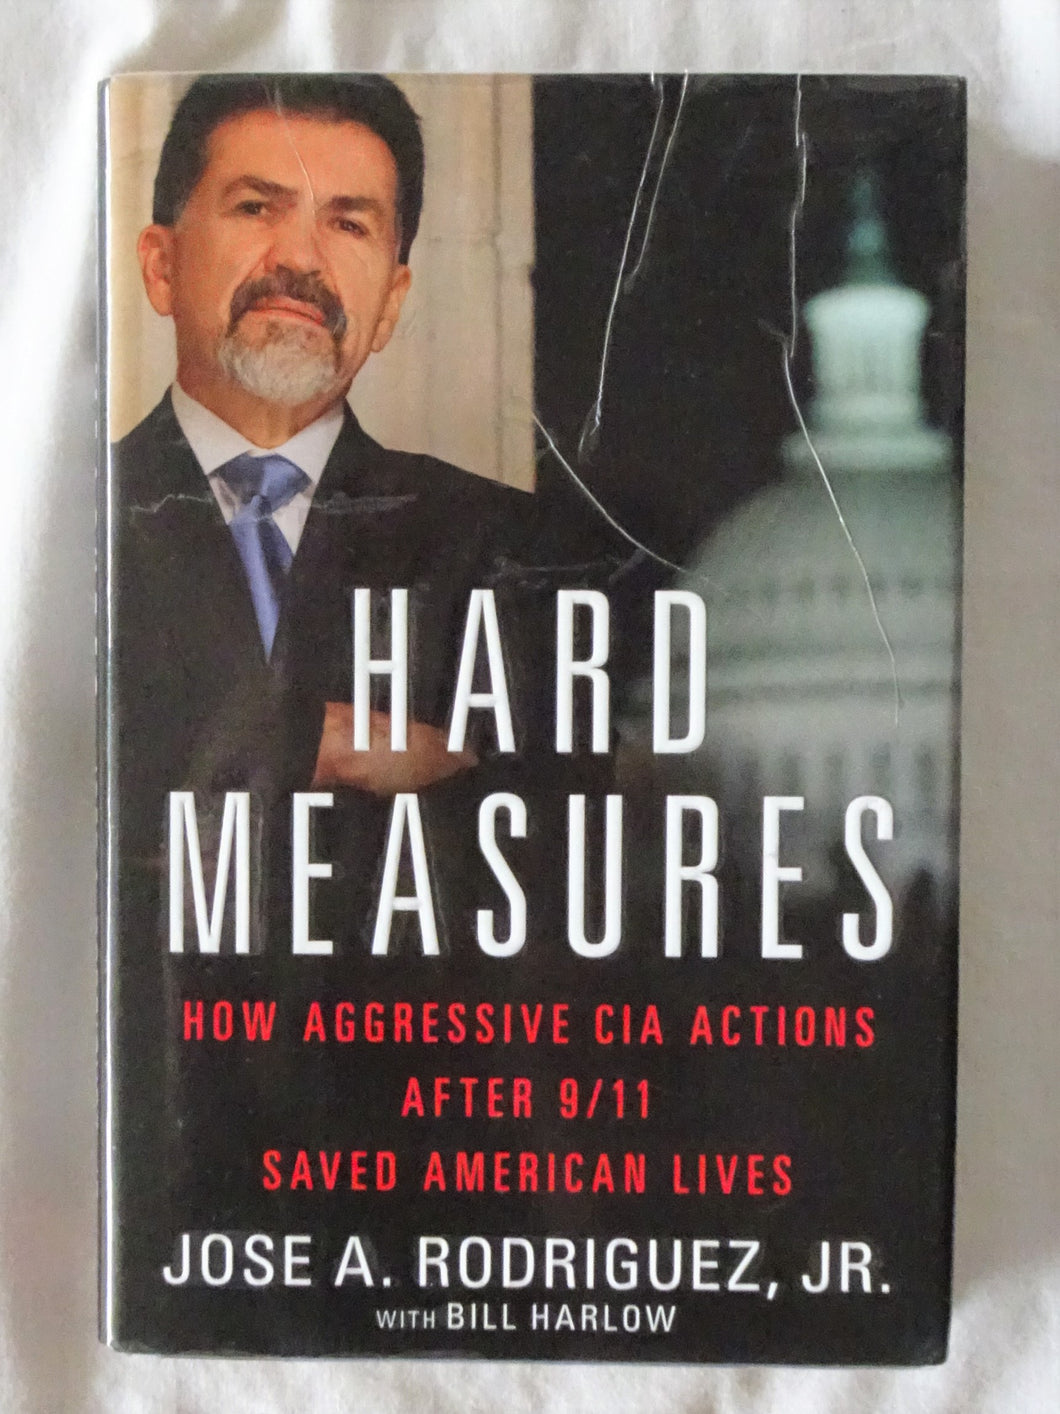 Hard Measures  How aggressive CIA actions after 9/11 saved American lives.  by Jose A. Rodriguez, Jr. with Bill Harlow